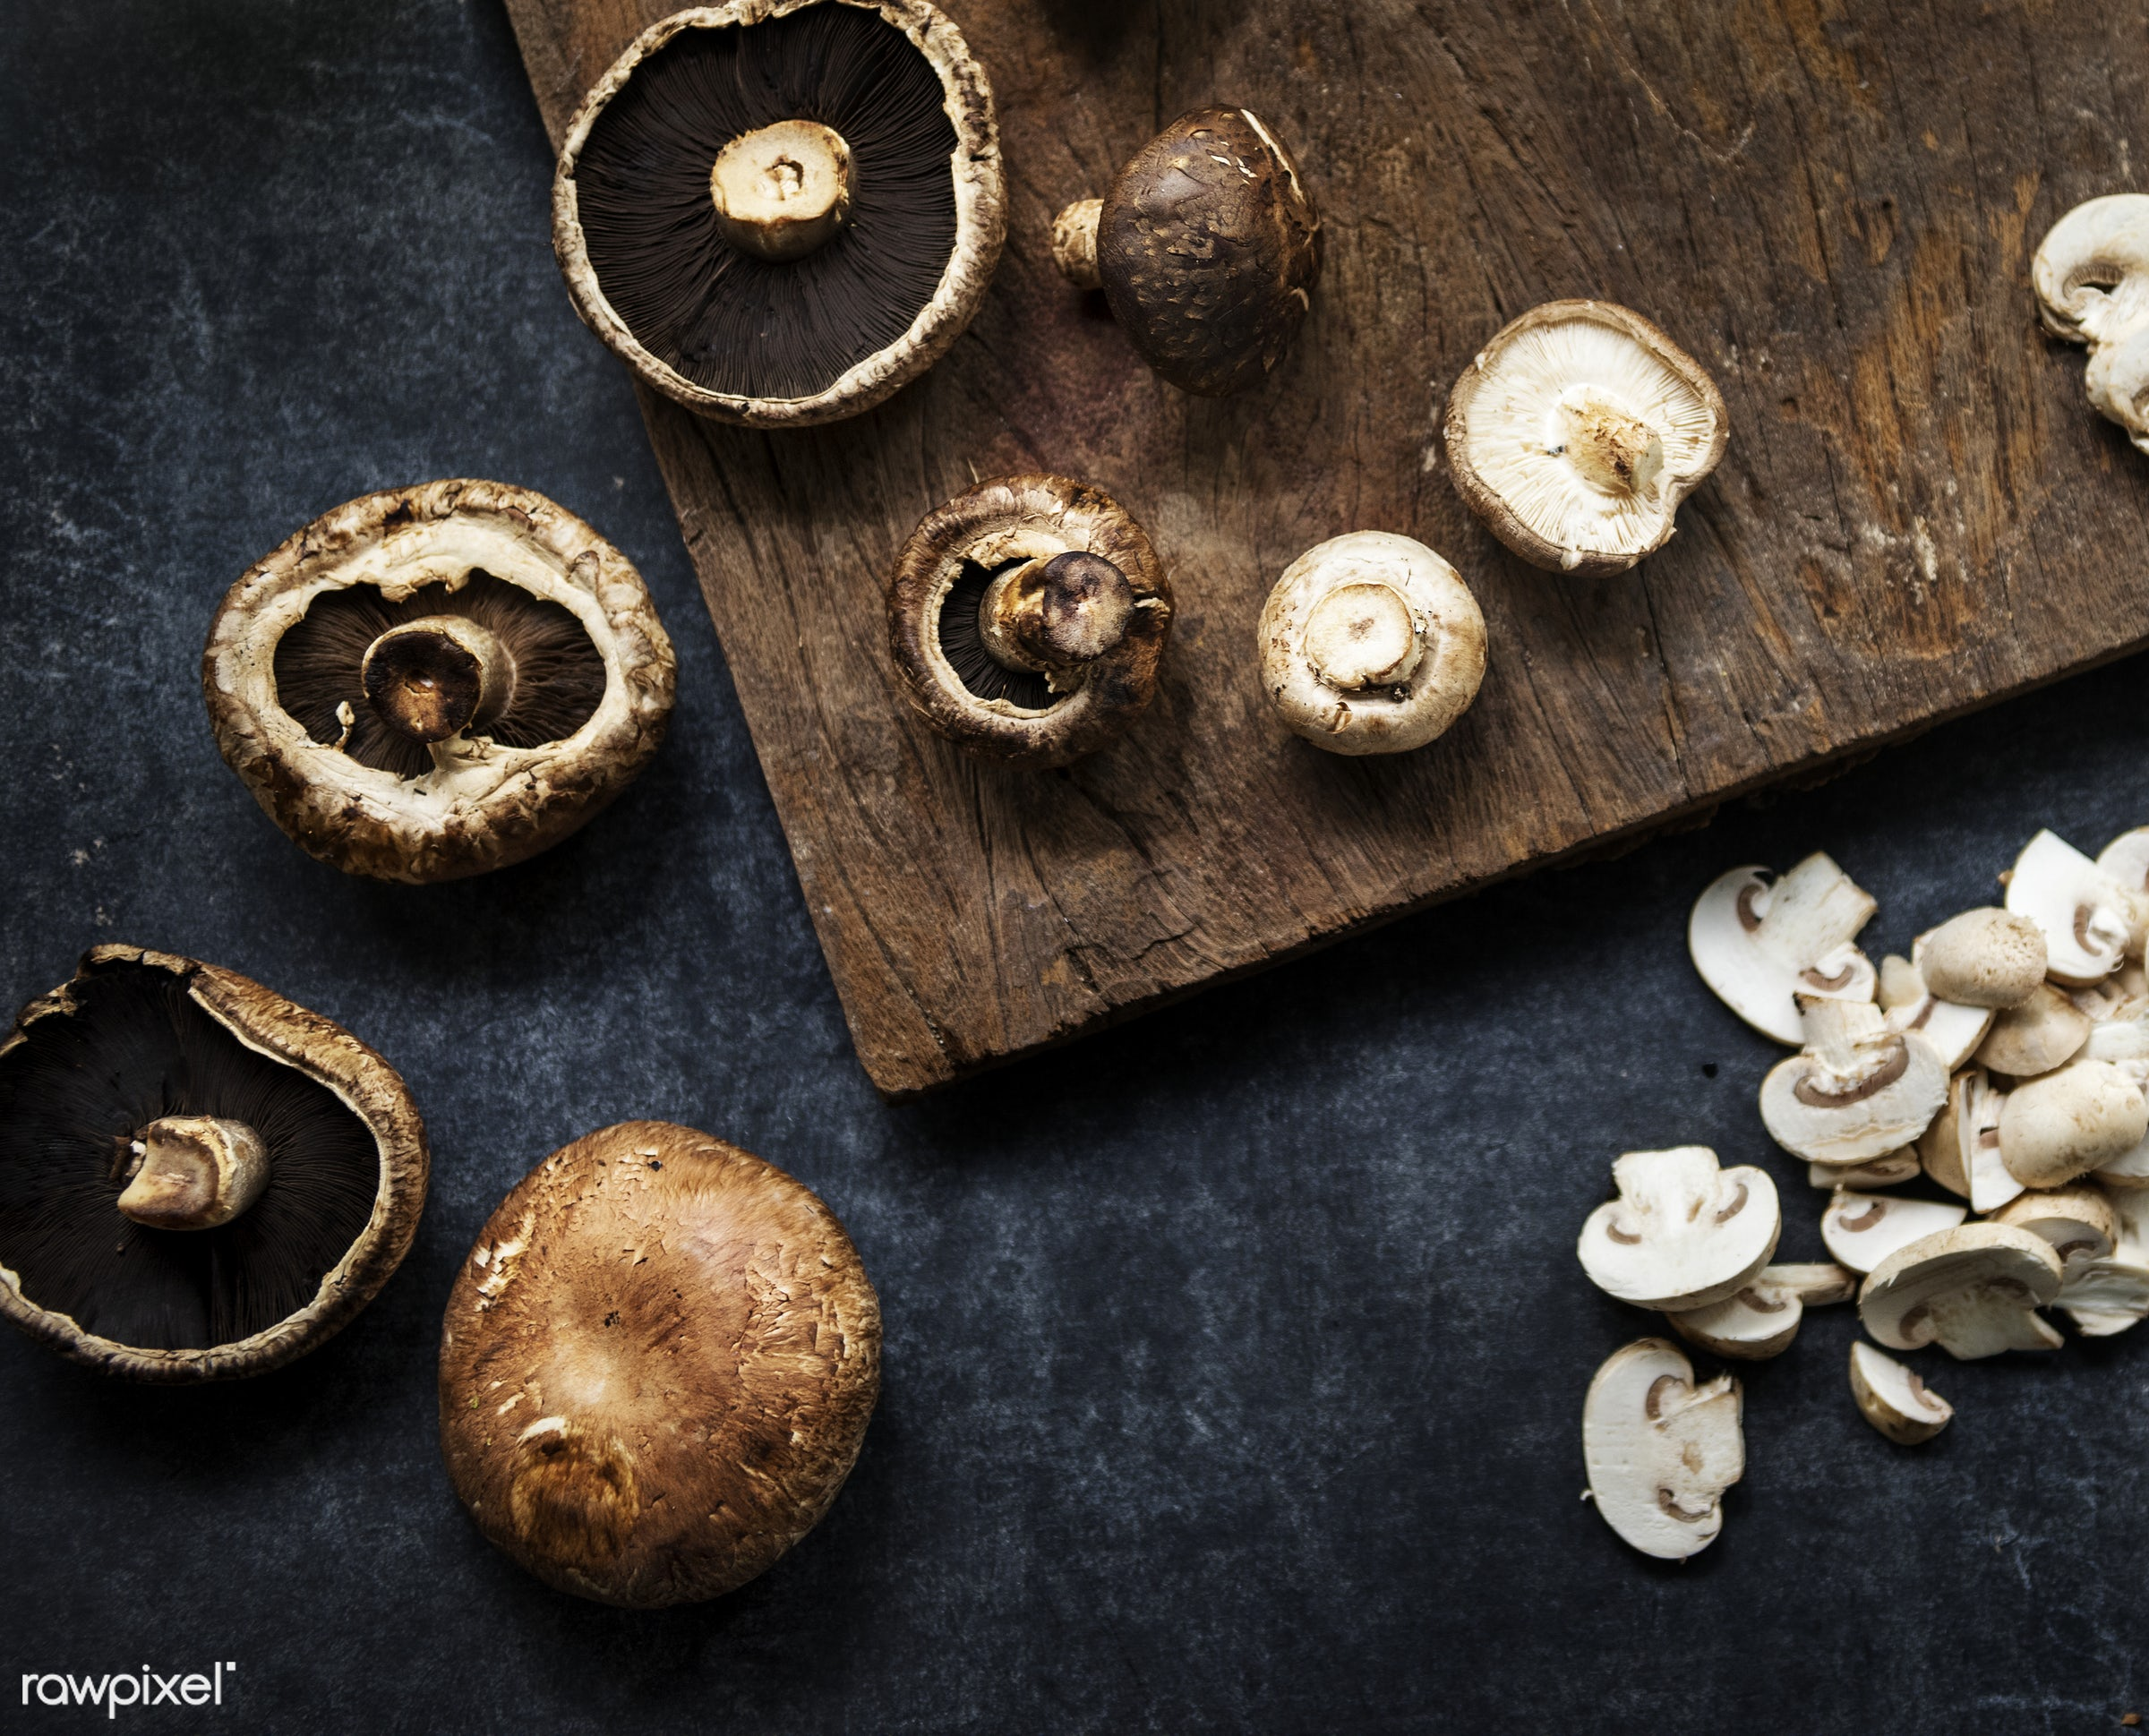 Different varieties of mushrooms - raw, mushroom, plant, nobody, shiitake, white button, farm, black background, ingredients...